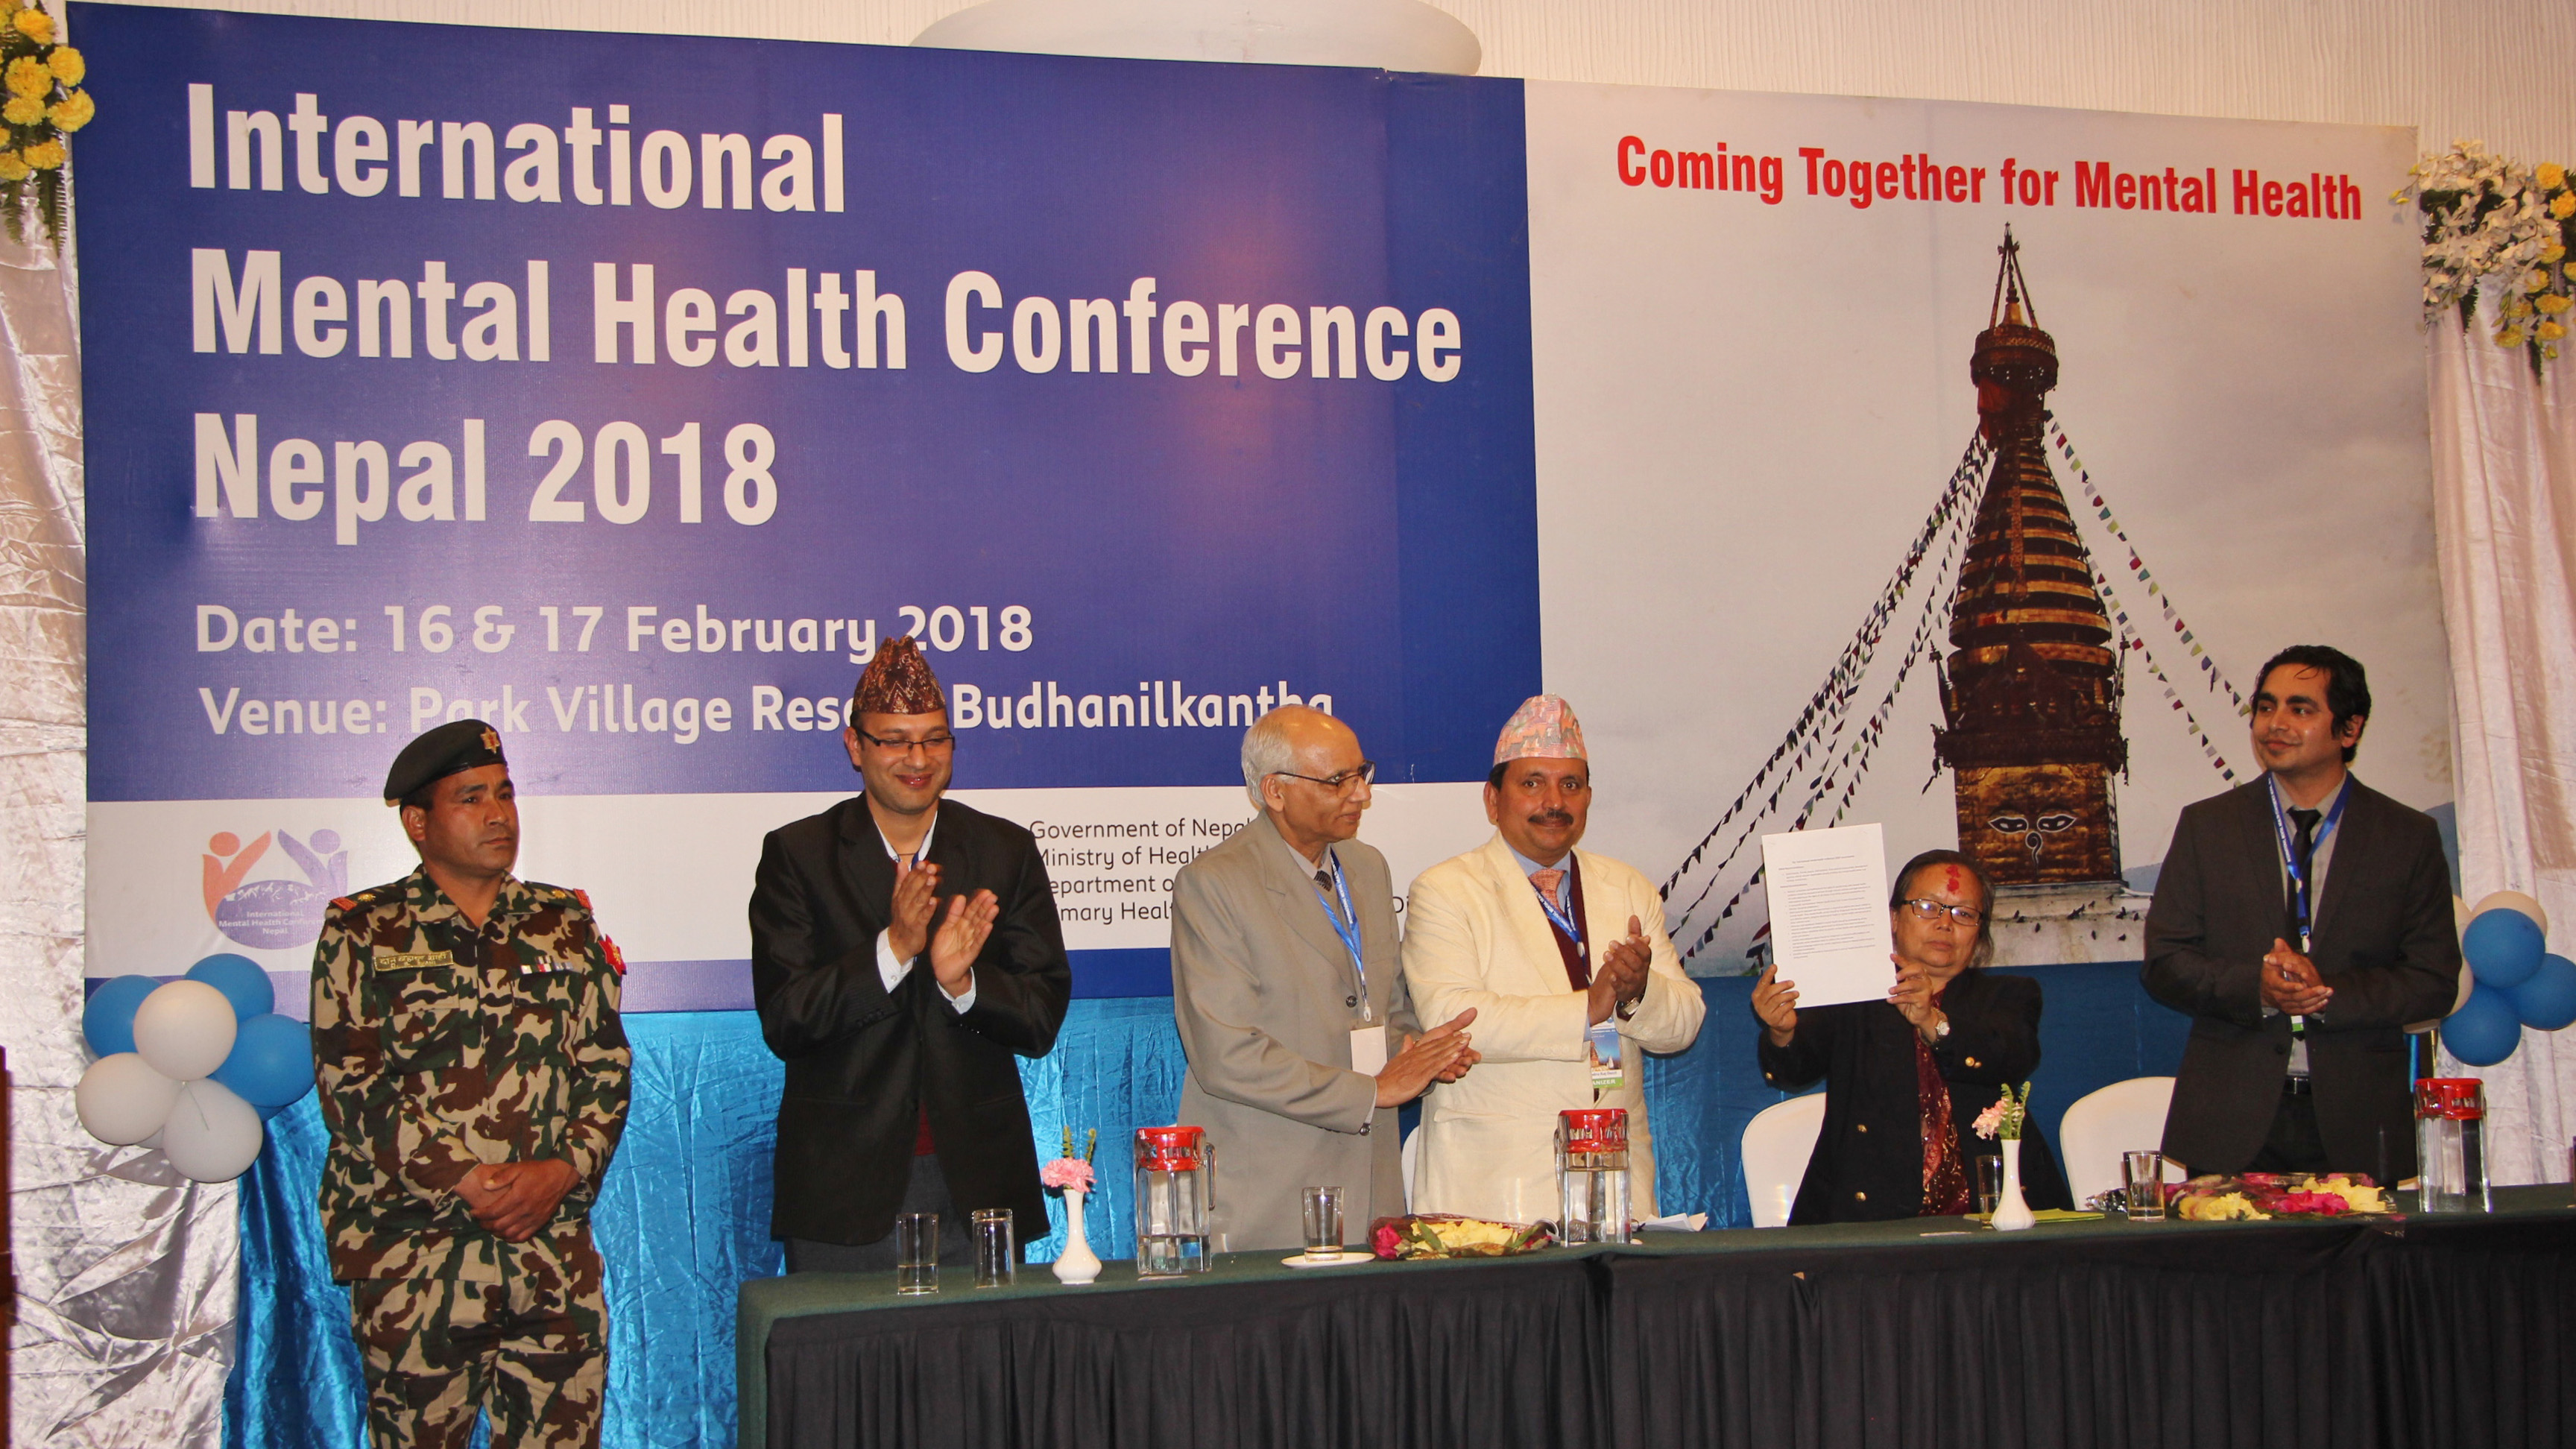 International Mental Health Conference Nepal 2018 - TPO Nepal